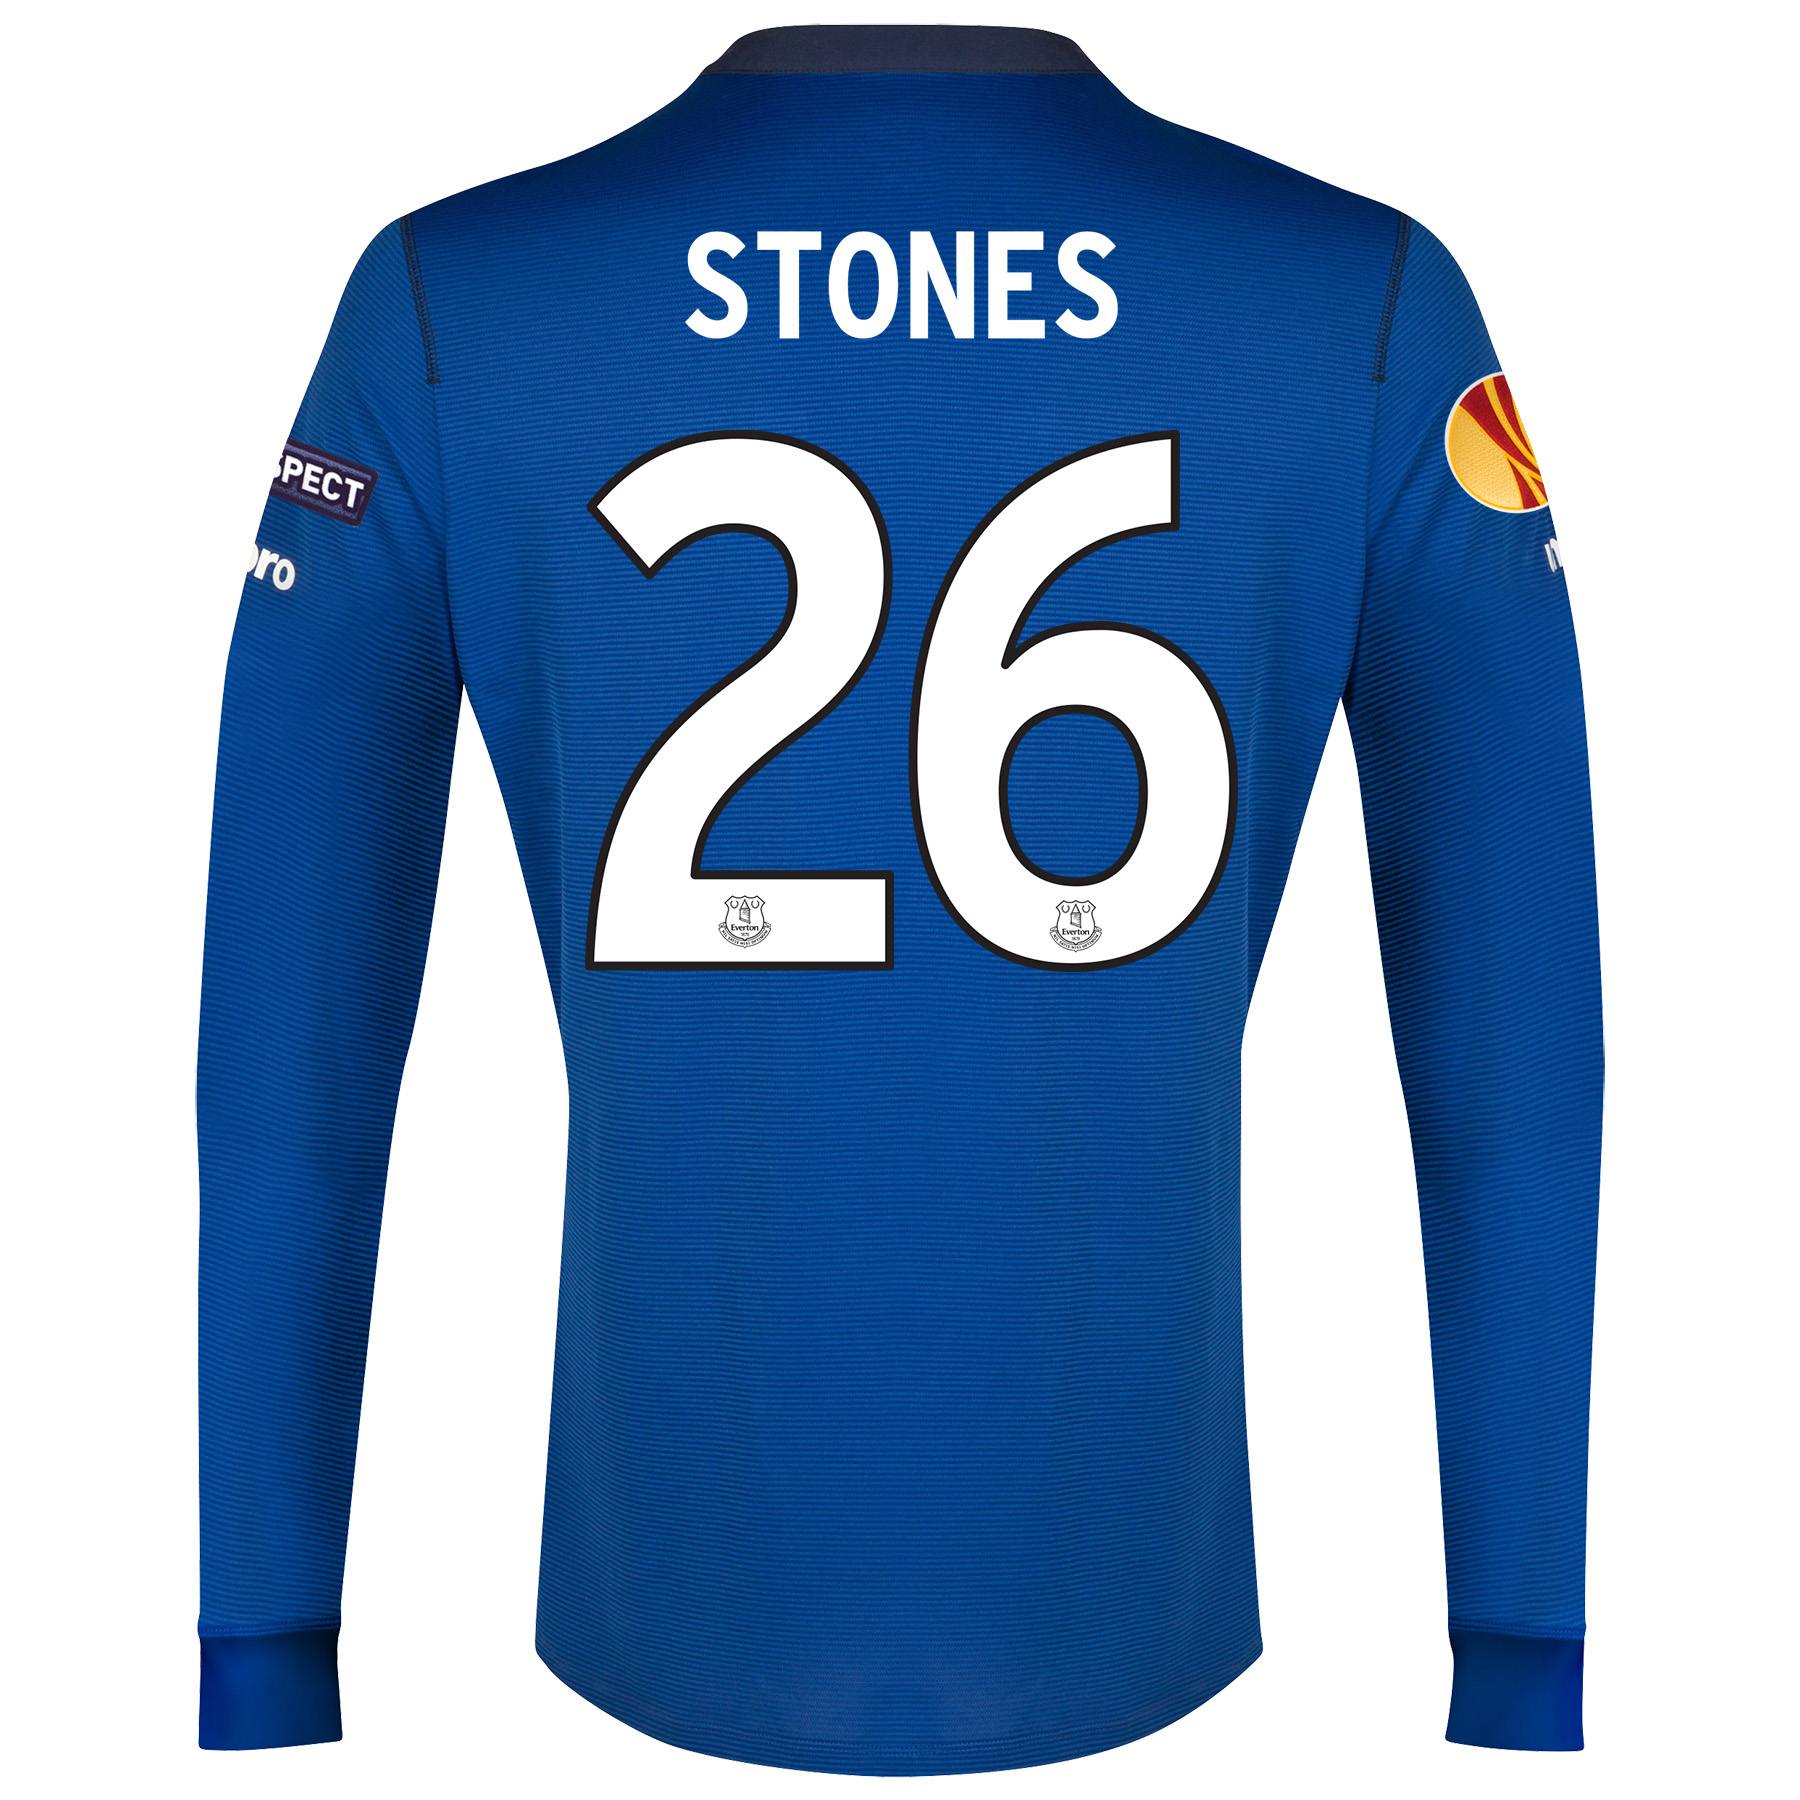 Everton UEFA Europa League Home Shirt 2014/15 LS with Stones 26 printing